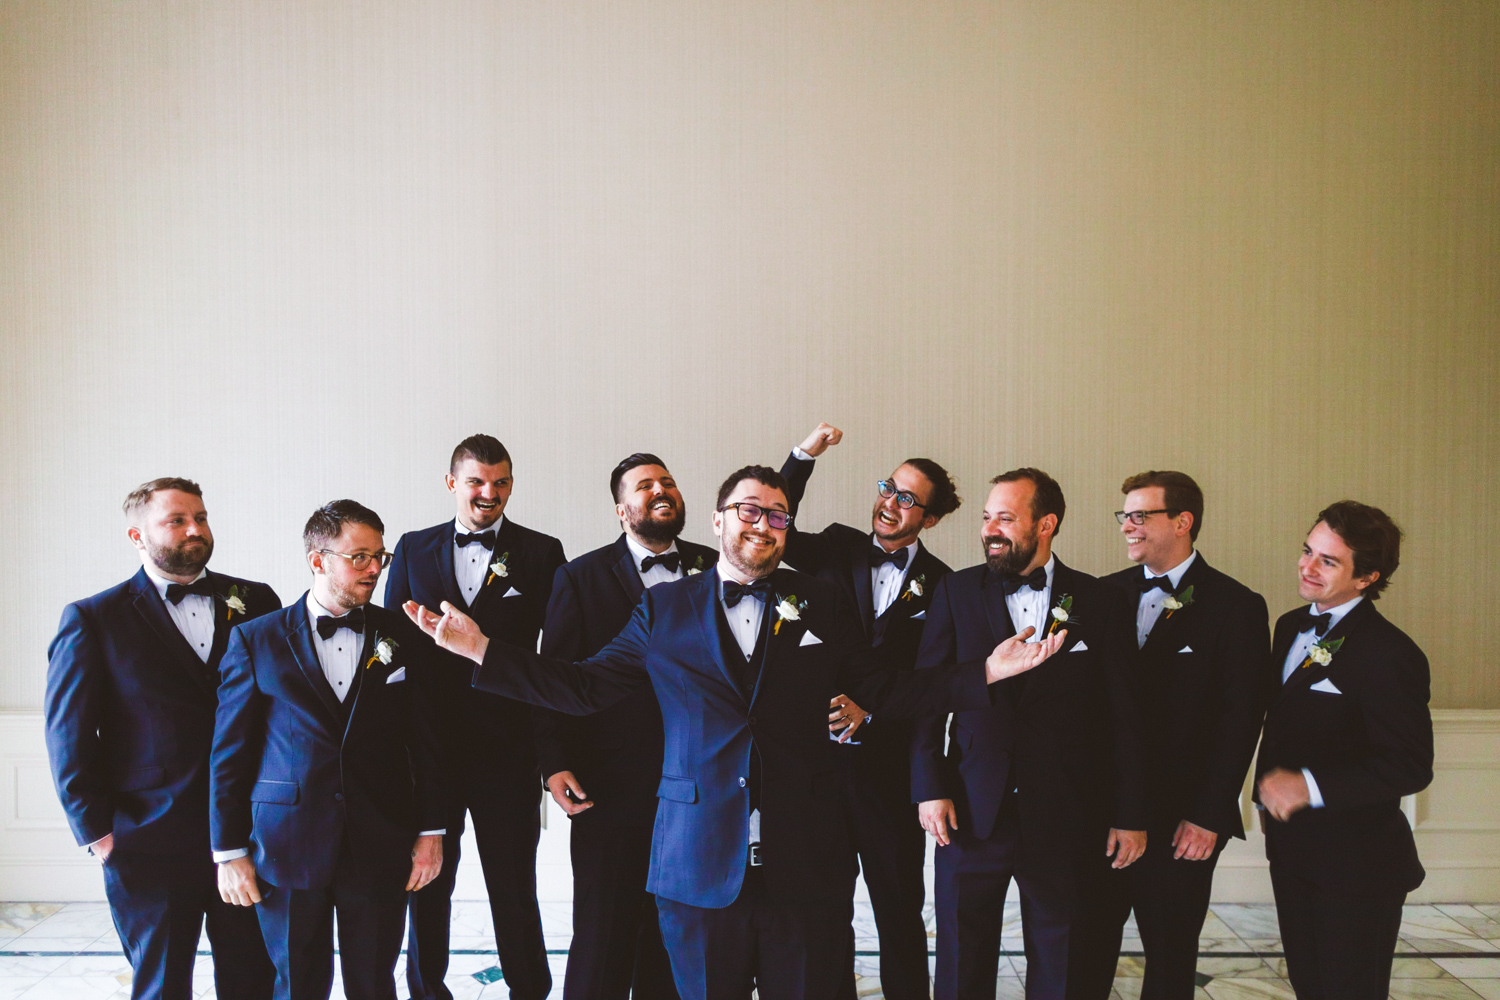 012 - groom and groomsmen hanging out.jpg